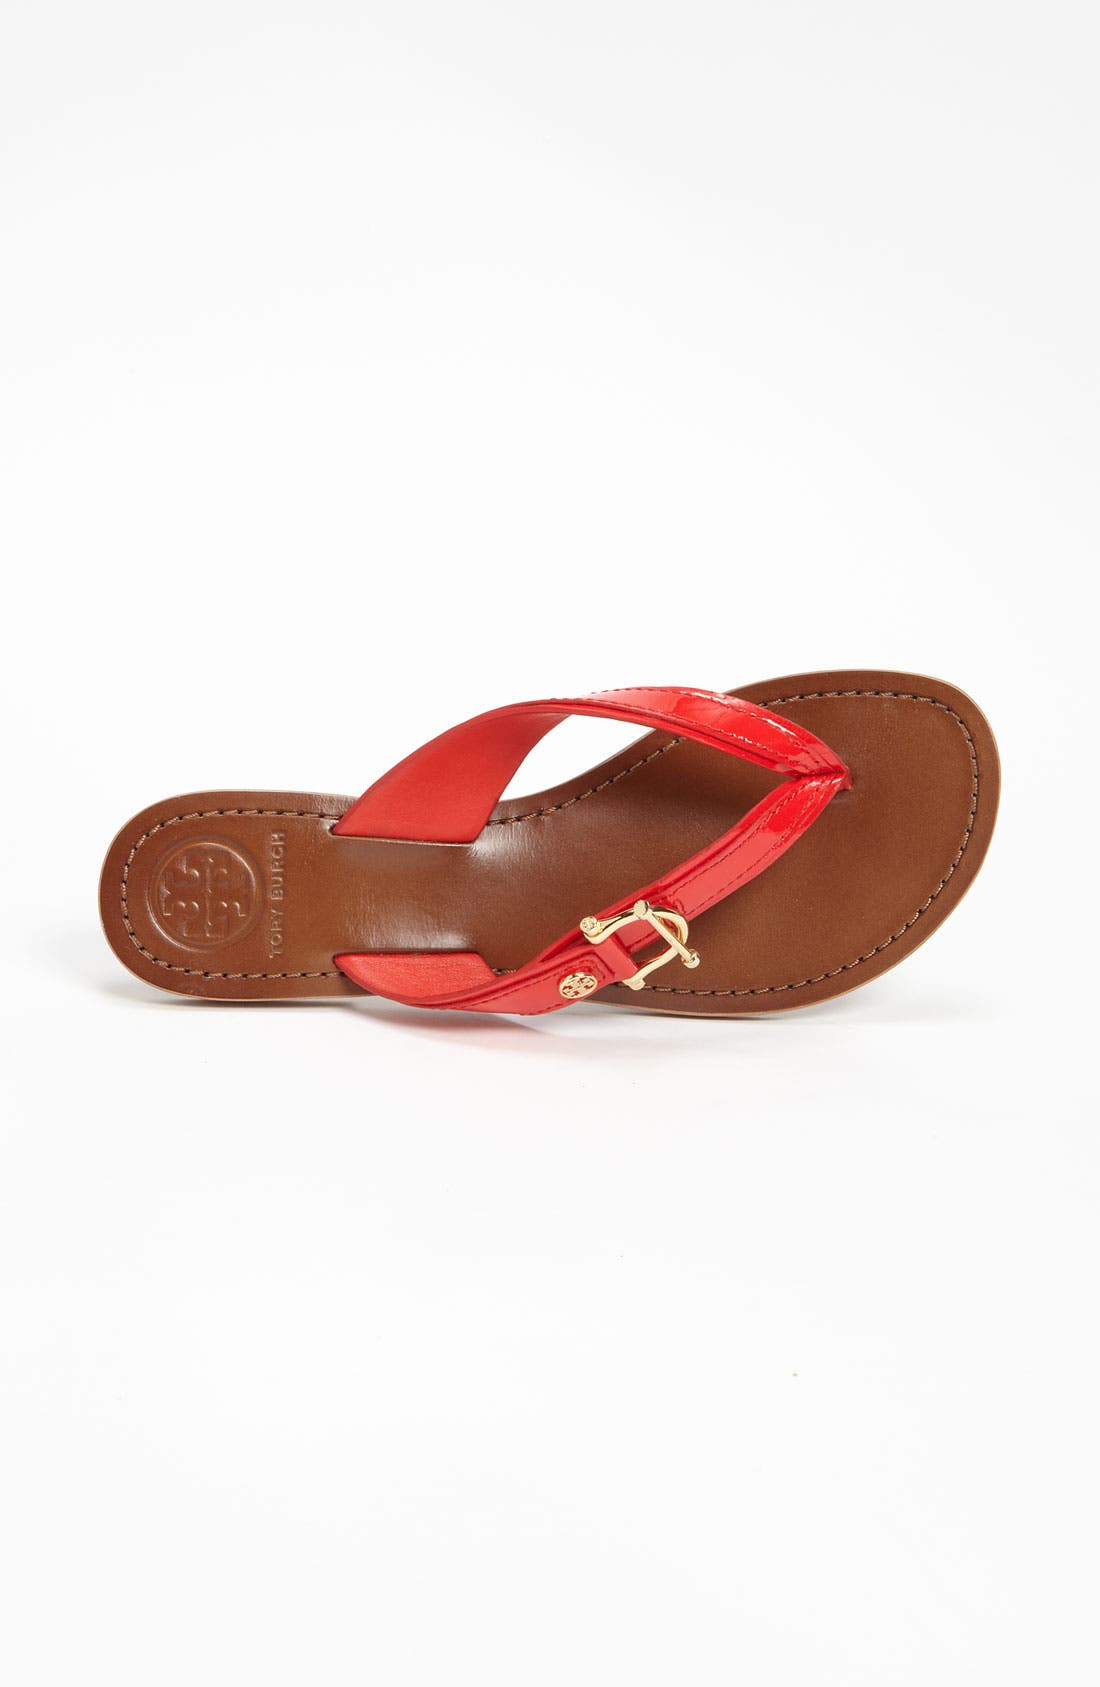 Alternate Image 3  - Tory Burch 'Nora' Sandal (Nordstrom Exclusive)